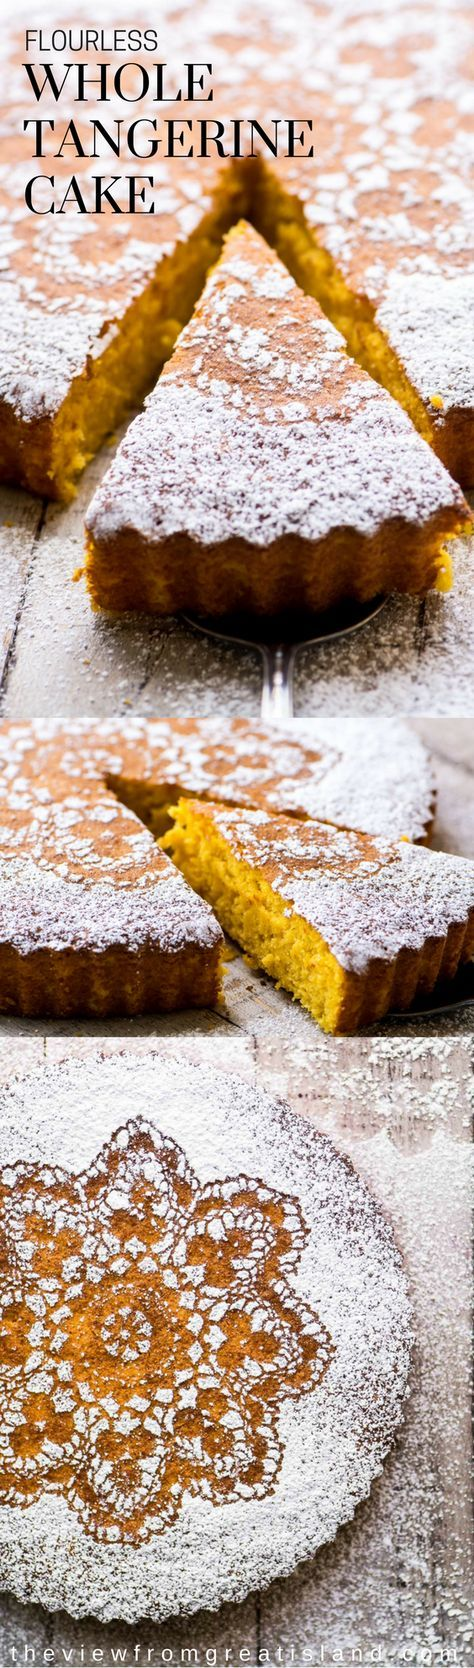 Gluten Free Whole Tangerine Cake ~ this cake is such a wonderful surprise, made with whole tangerines and almond flour in the Italian tradition. @orangecake #flourlesscake #glutenfreecake #tangerinecake #wholeorangecake #citrus #glutenfreeorangecake #almondflourcake #almondflour #lacecake #tangerines #clementines #dessert #glutenfreedessert #flourlesscake